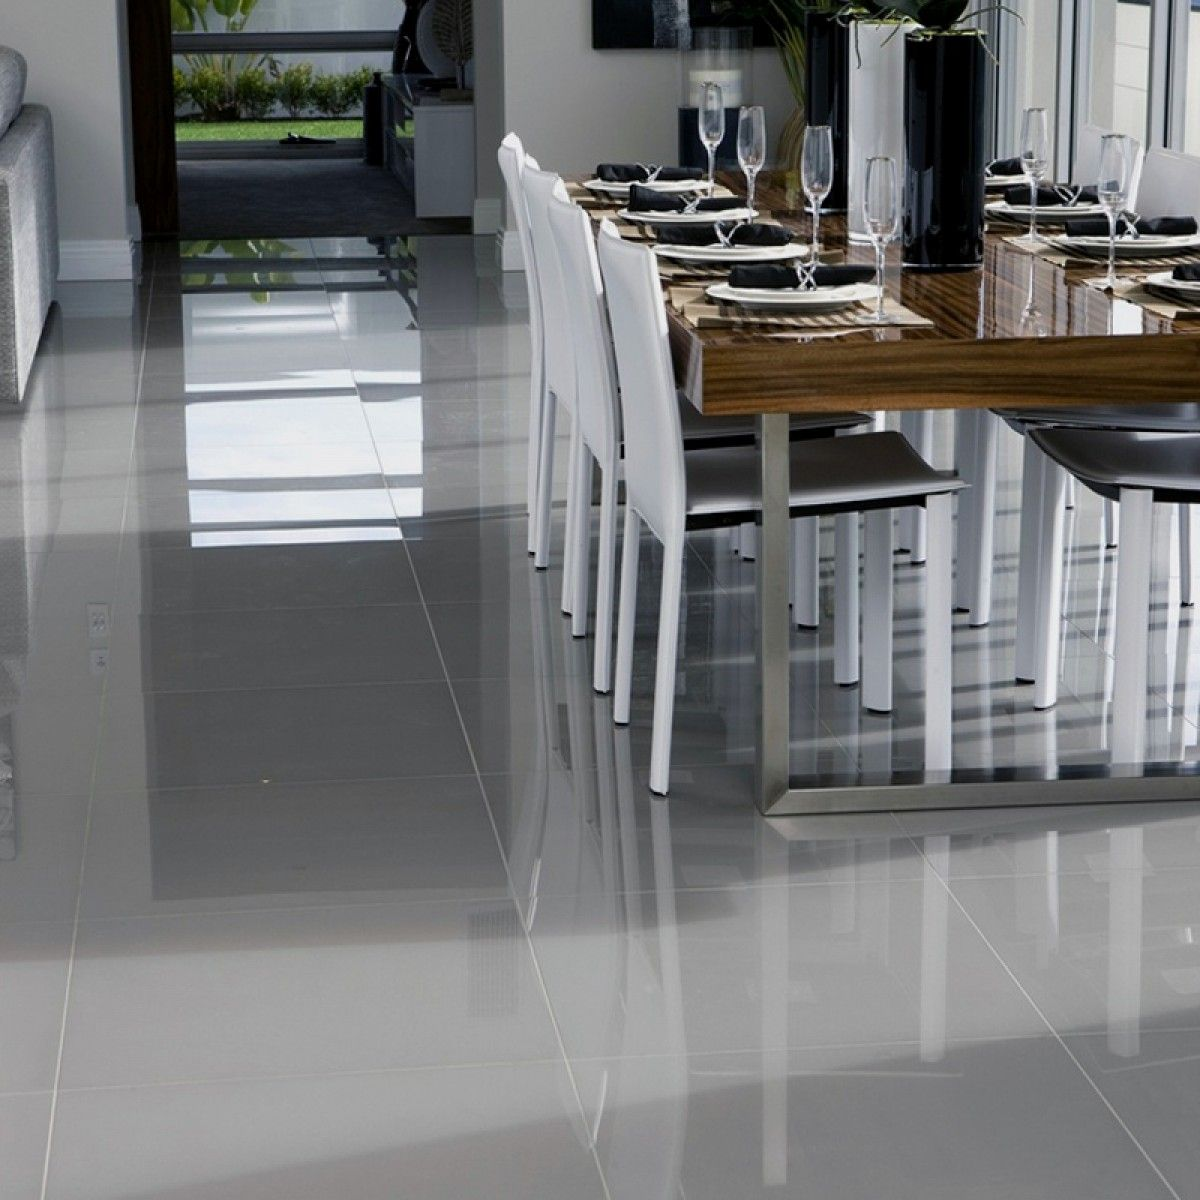 Polished Kitchen Floor Tiles Polished White Floor Tile Alb2492 M Crazy Or Good Idea Kitchen